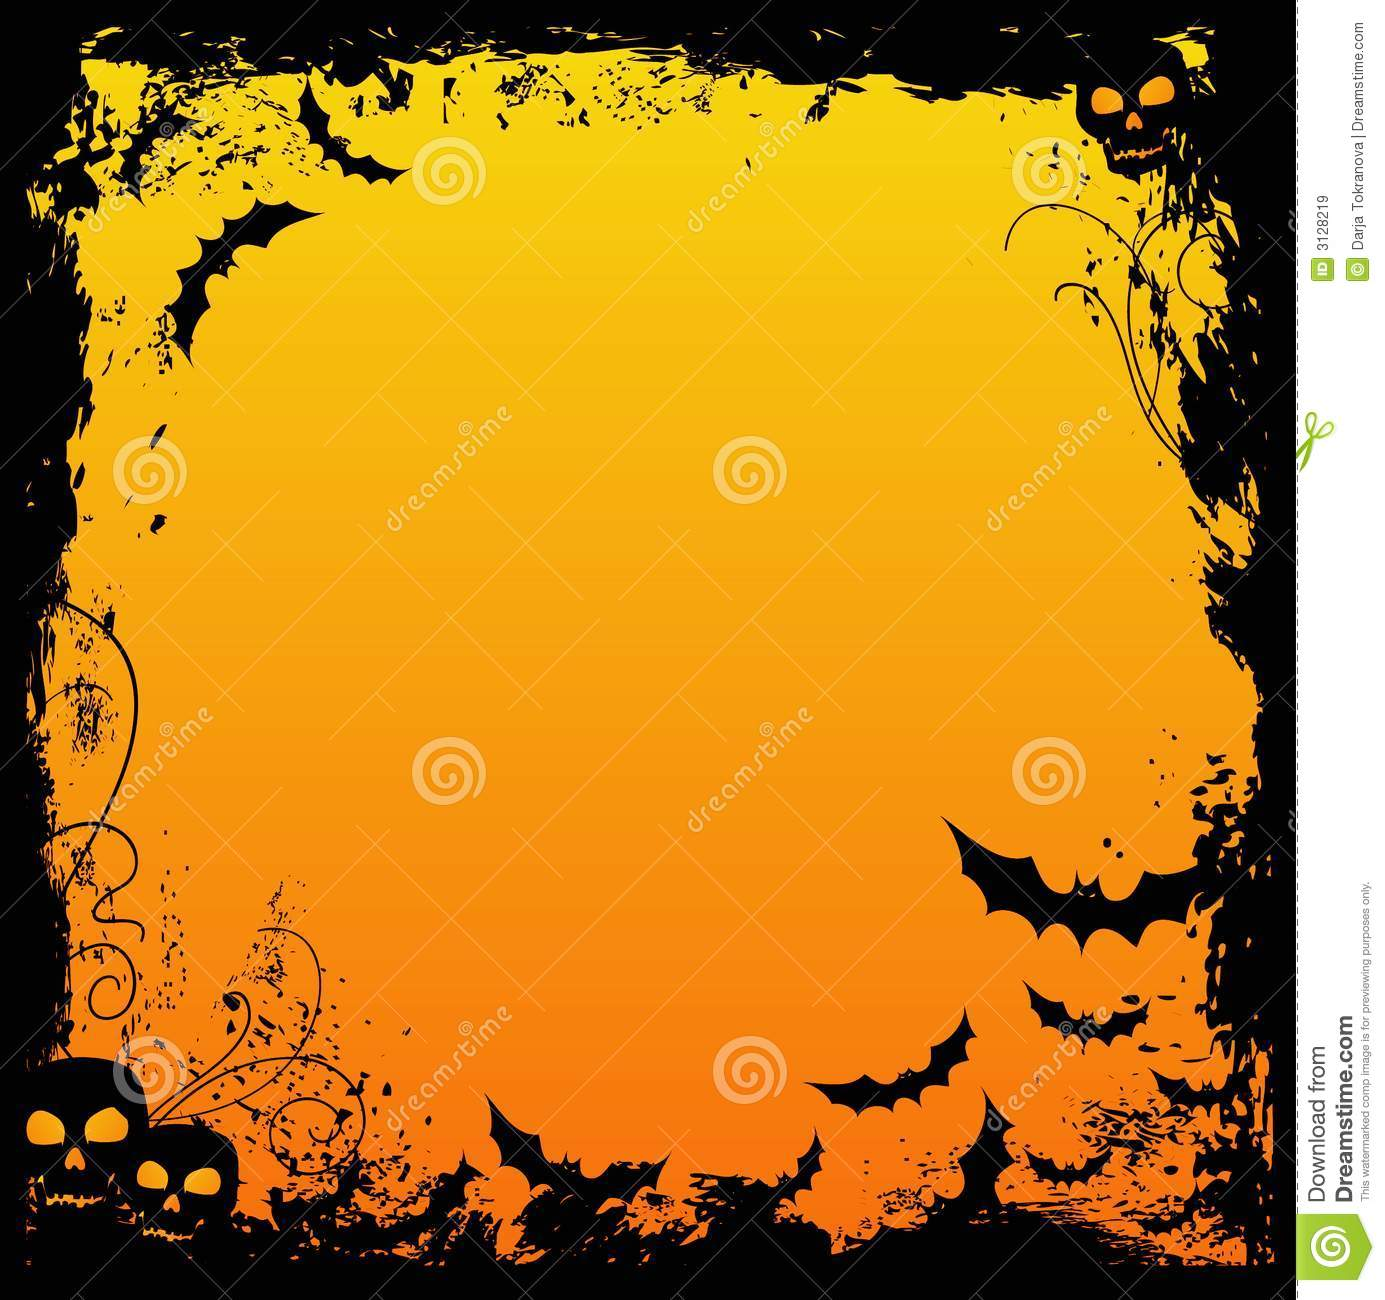 Creepy Fall Wallpaper Halloween Design Stock Vector Illustration Of Silhouette